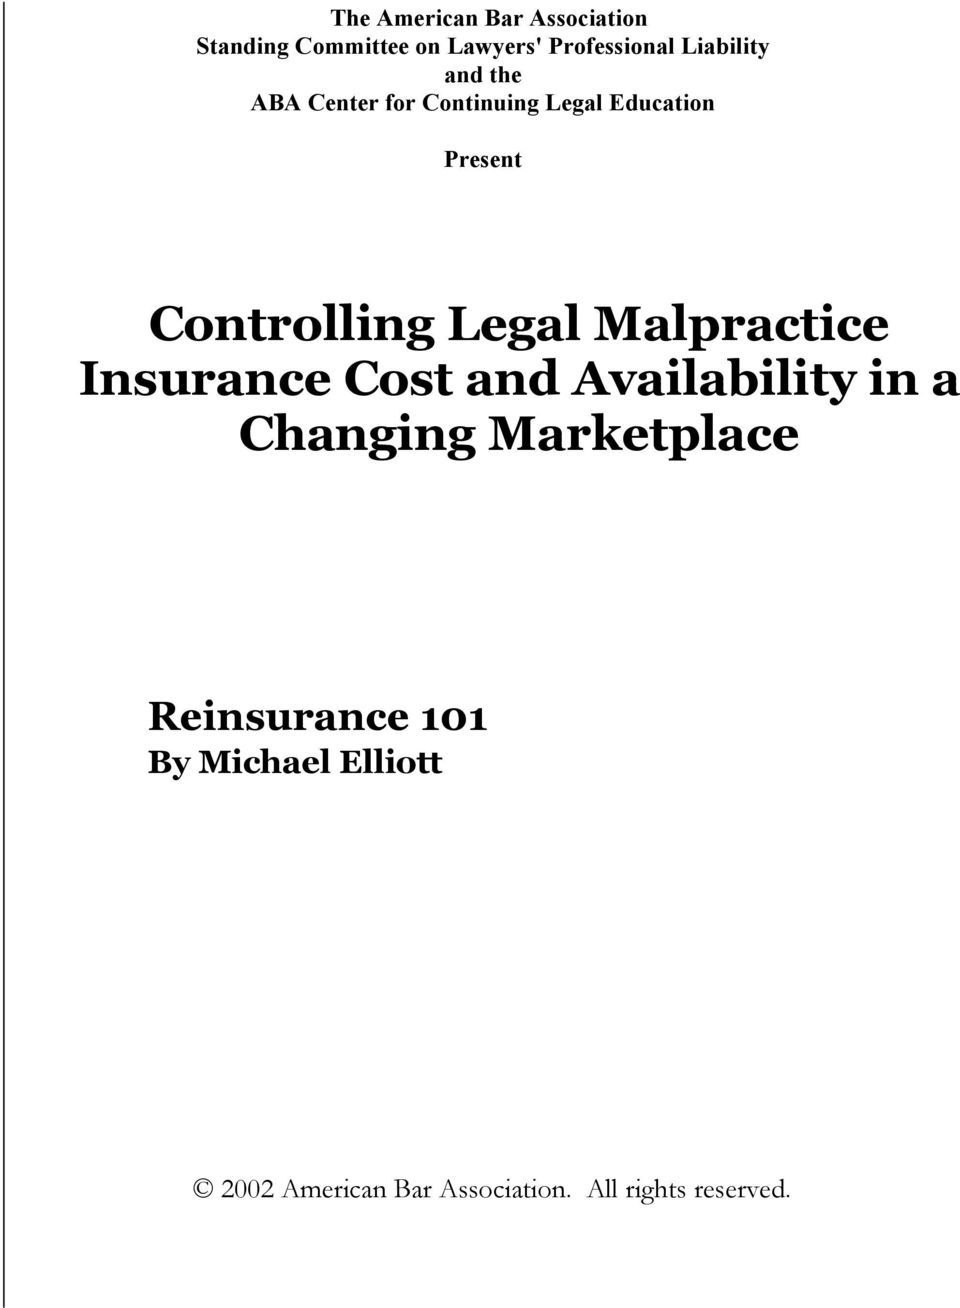 Controlling Legal Malpractice Insurance Cost and Availability in a Changing